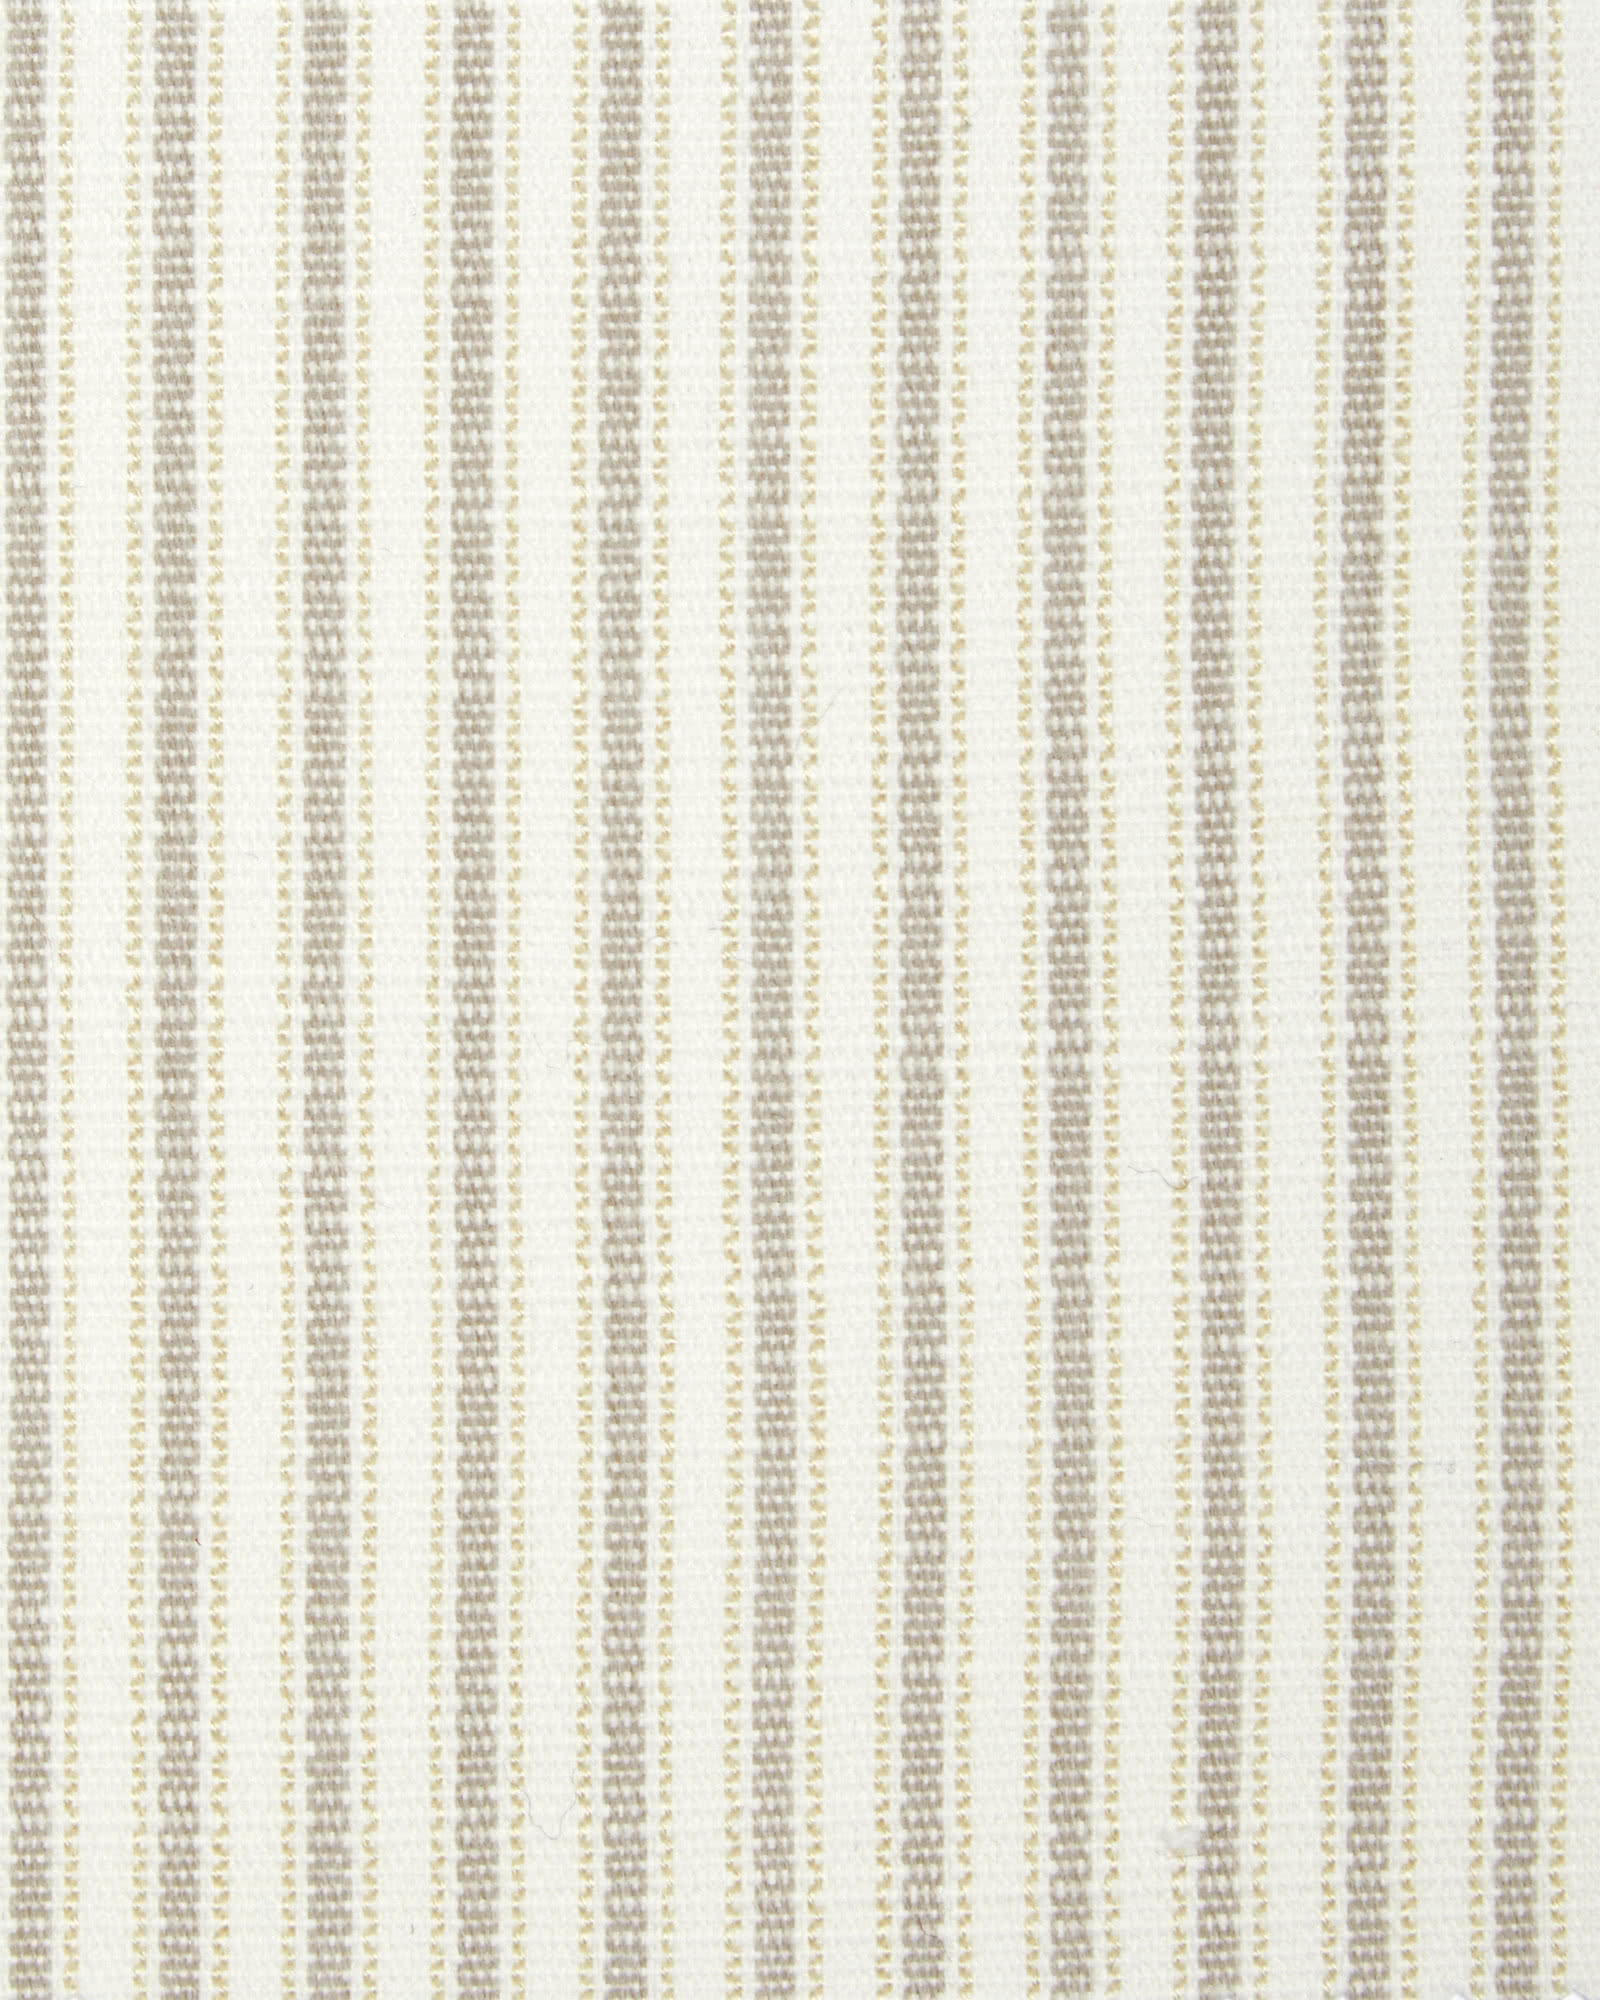 Fabric by the Yard – Perennials® Shirting Stripe Fabric, Sand